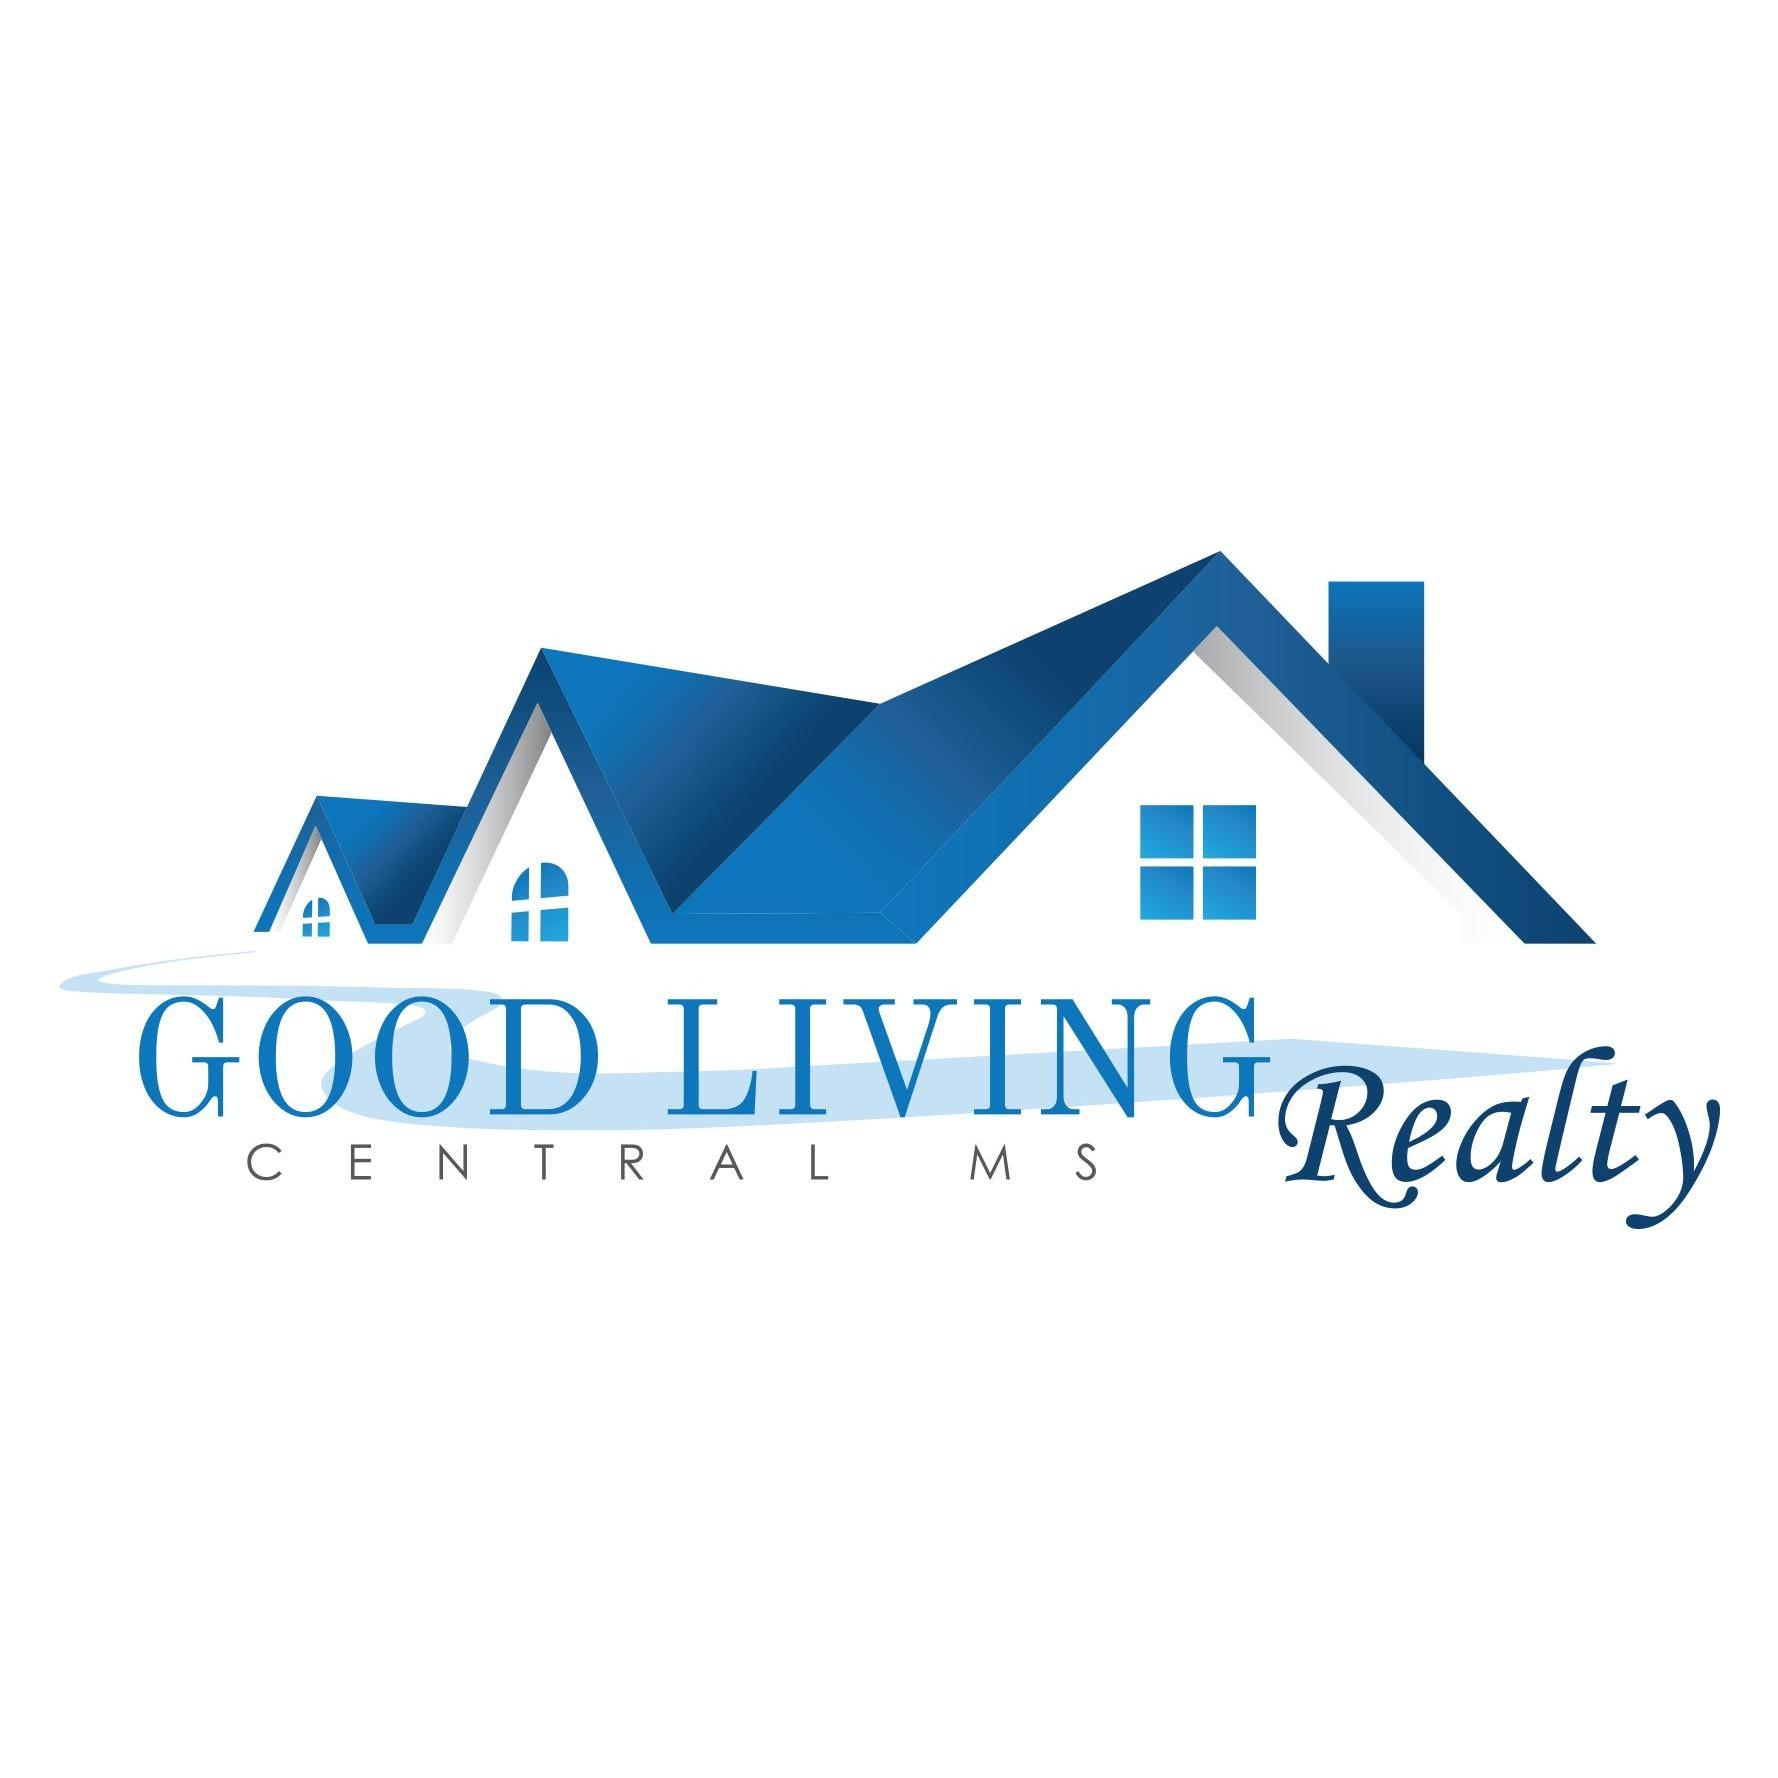 Good Living Realty Central MS image 1